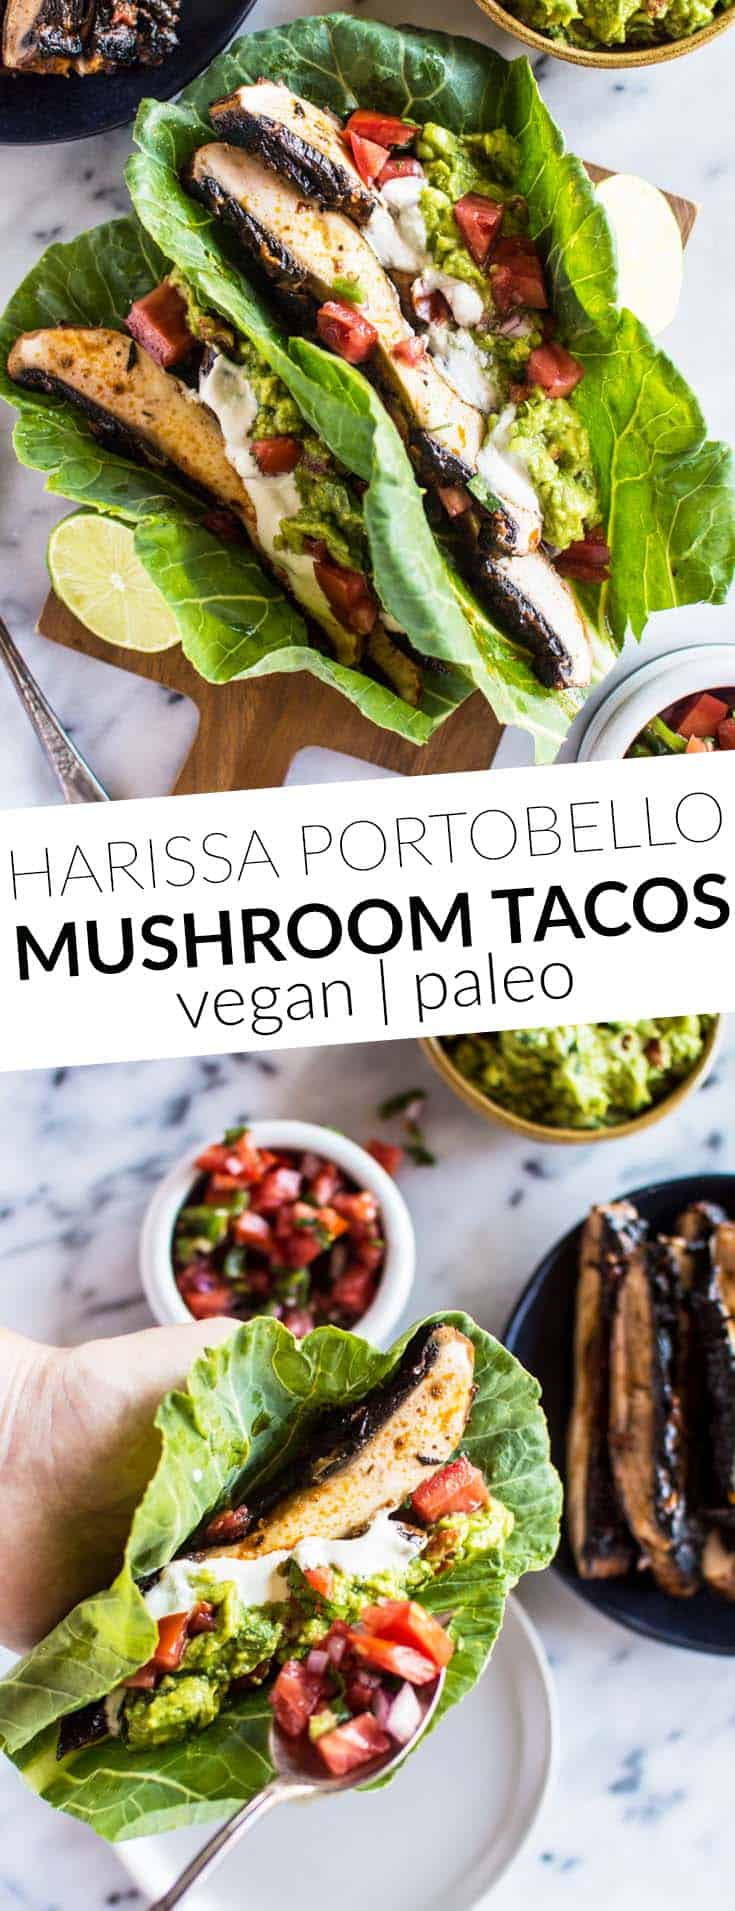 Harissa Portobello Mushroom Tacos - lighten up your tacos with collard greens! These tacos are ready in under 30 minutes! vegan, gluten-free, paleo, whole30-friendly. by @healthynibs